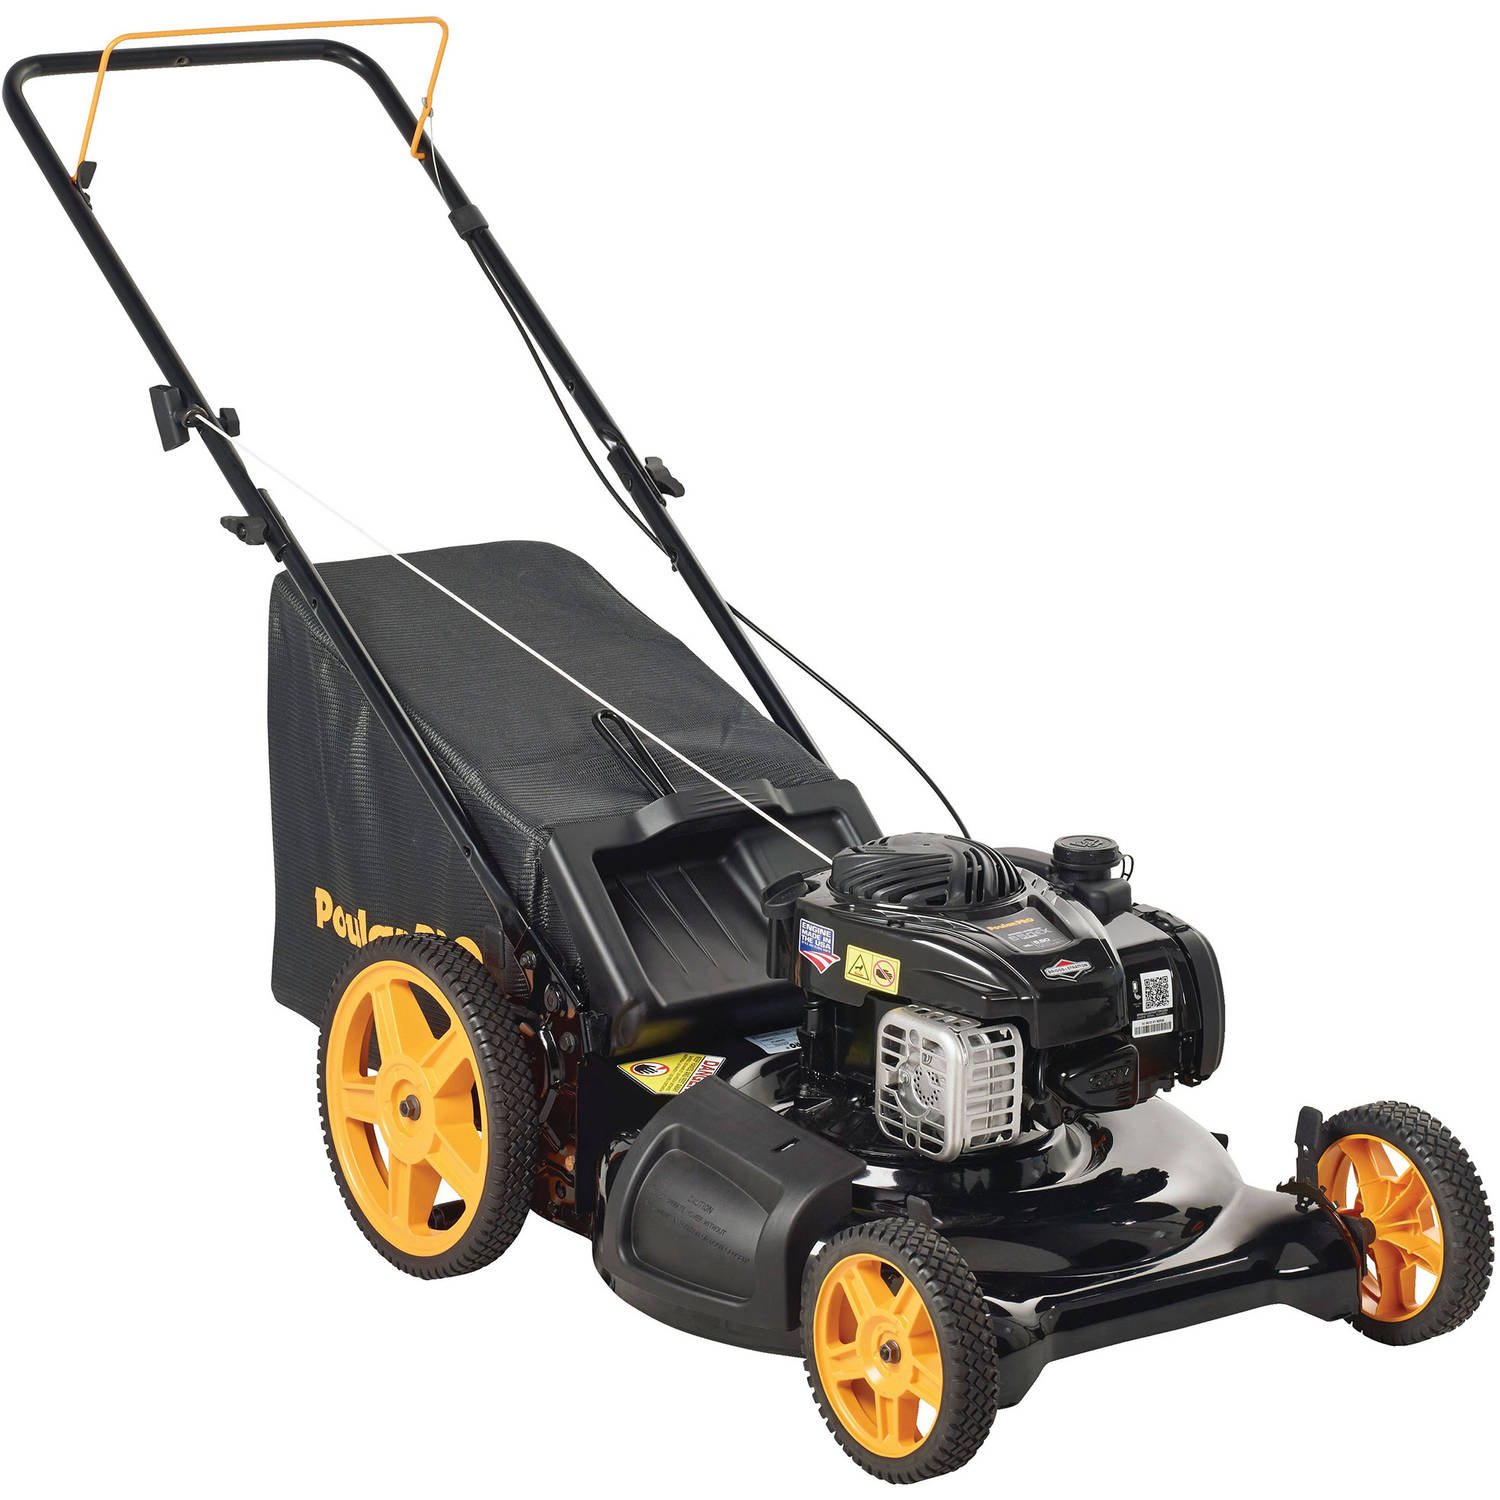 "Poulan Pro 21"" 140cc Gas 3-in-1 Lawn Mower with High-Rear Wheels"